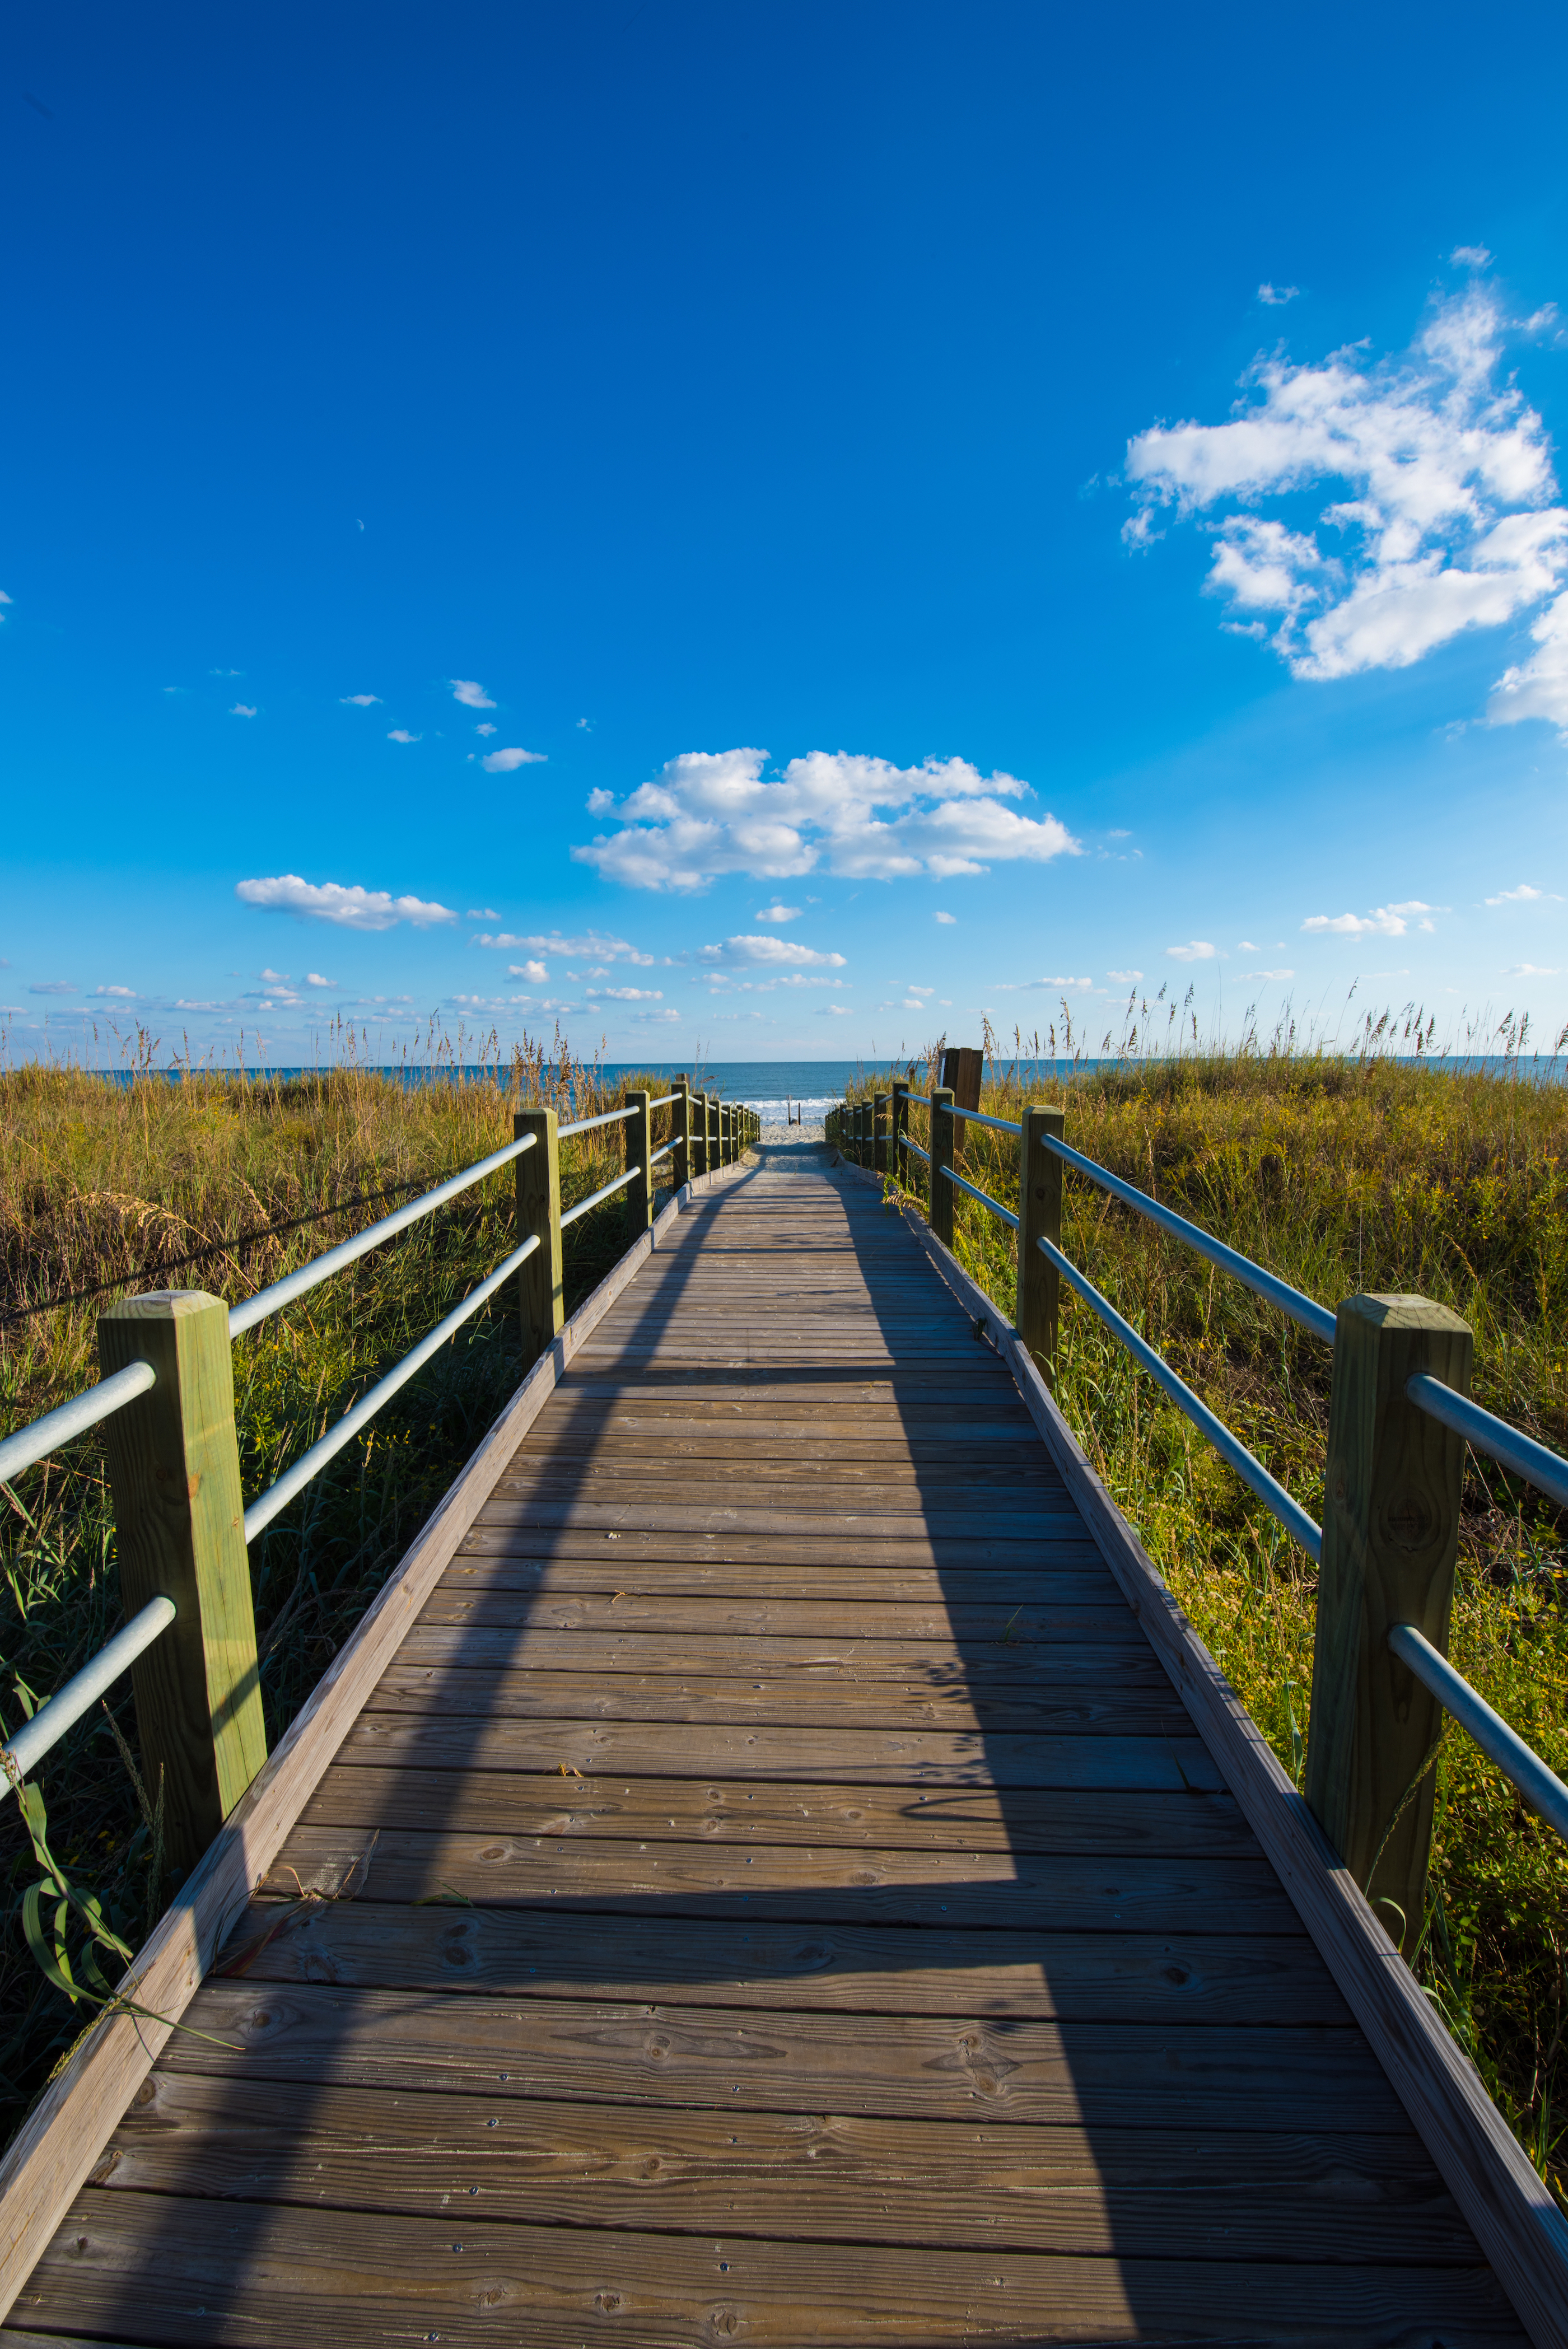 Myrtle Beach A Coastal City In South Carolina: Myrtle Beach Media: New Developments For This Year And Beyond